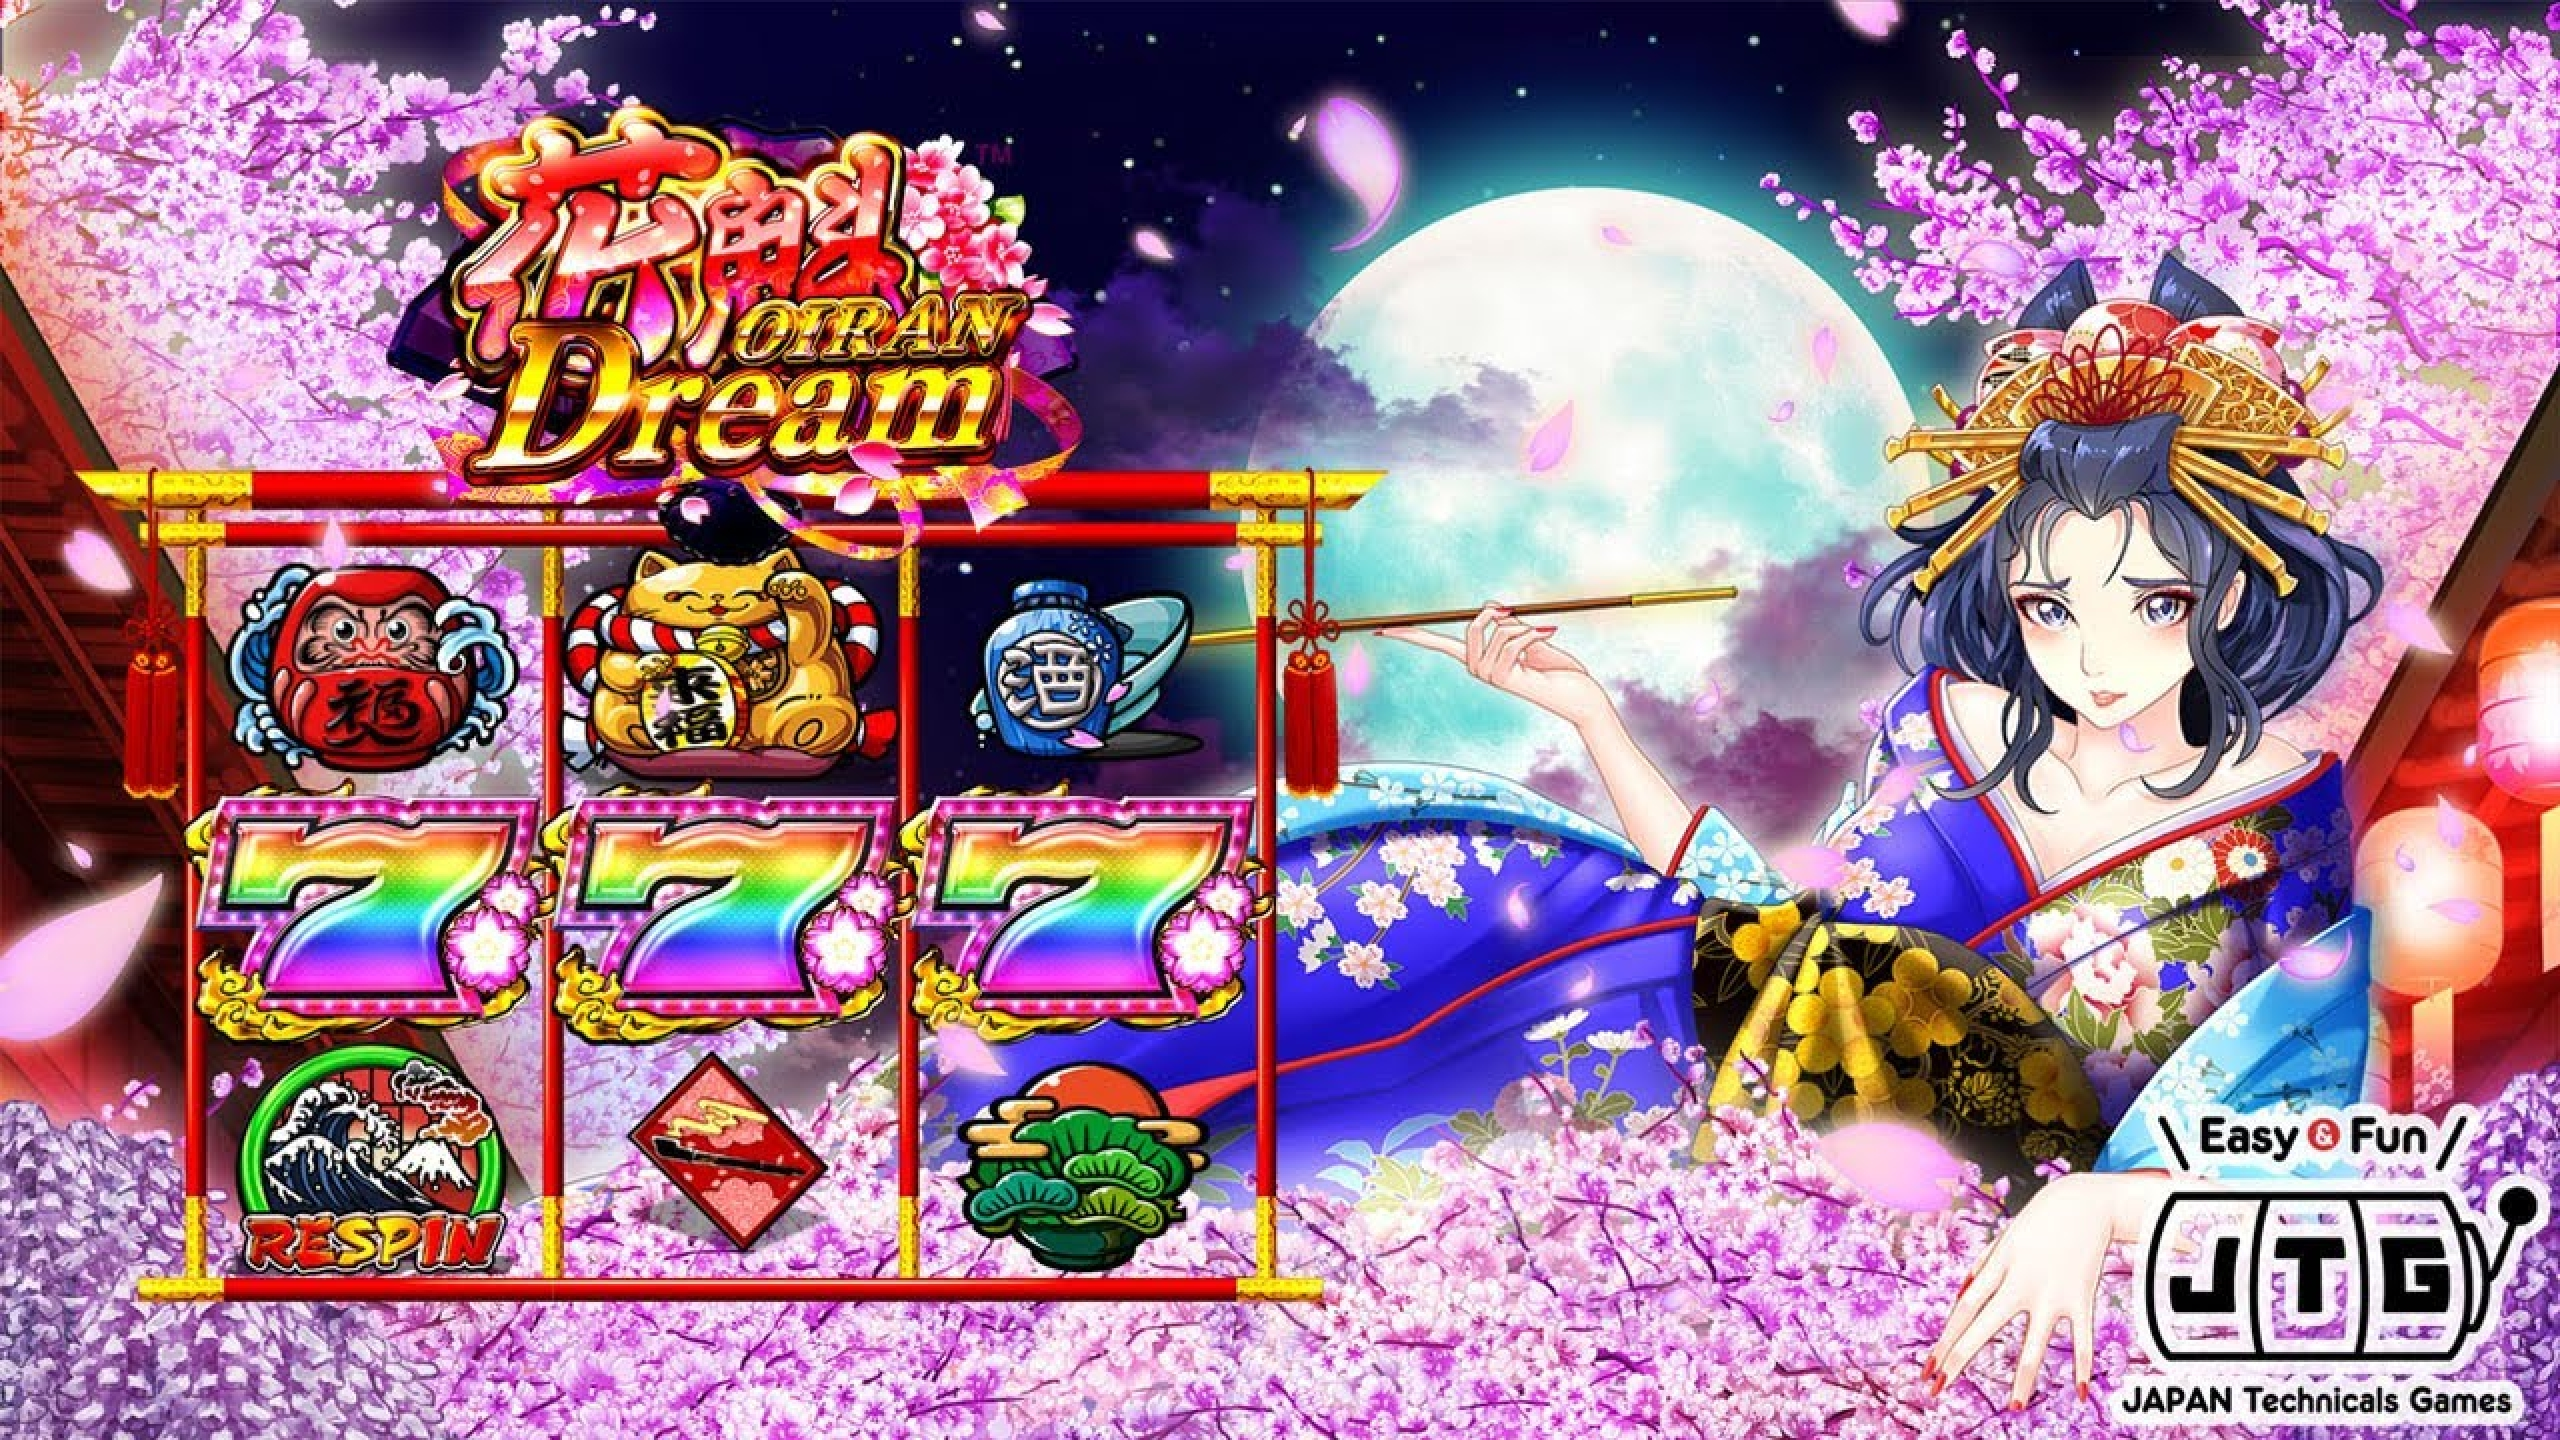 The Oiran Dream Online Slot Demo Game by JTG